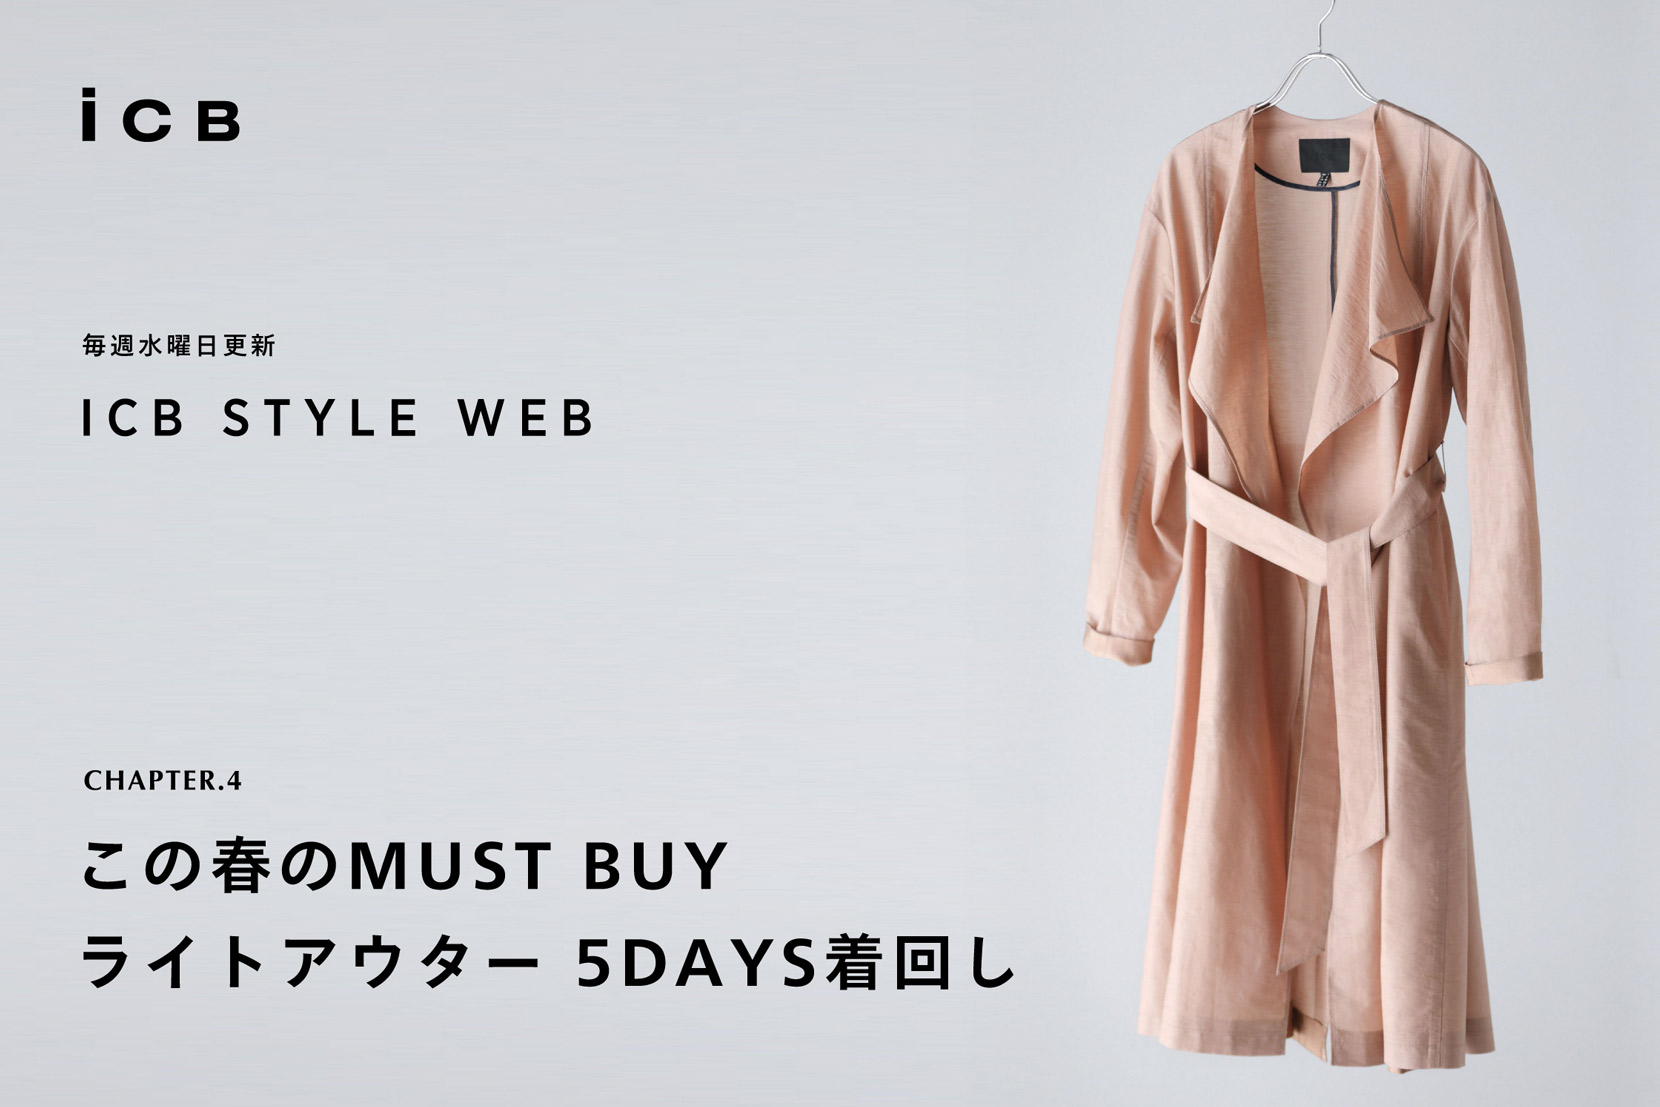 ICB STYLE WEB chapter.4「シャツアウターの5DAYS着回し」- ICB